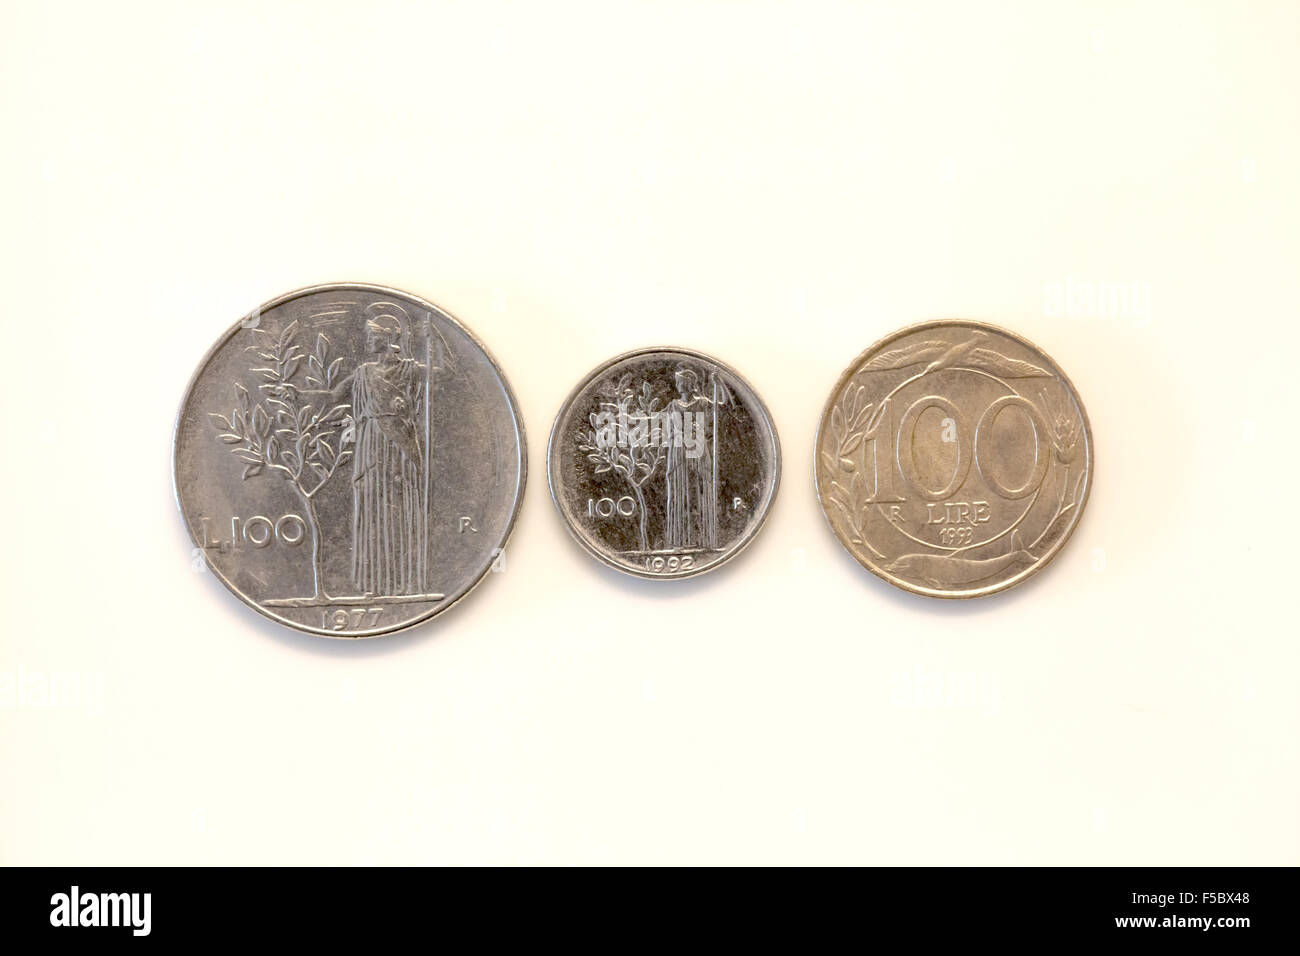 old italian currency coin evolution (cento lire) - Stock Image